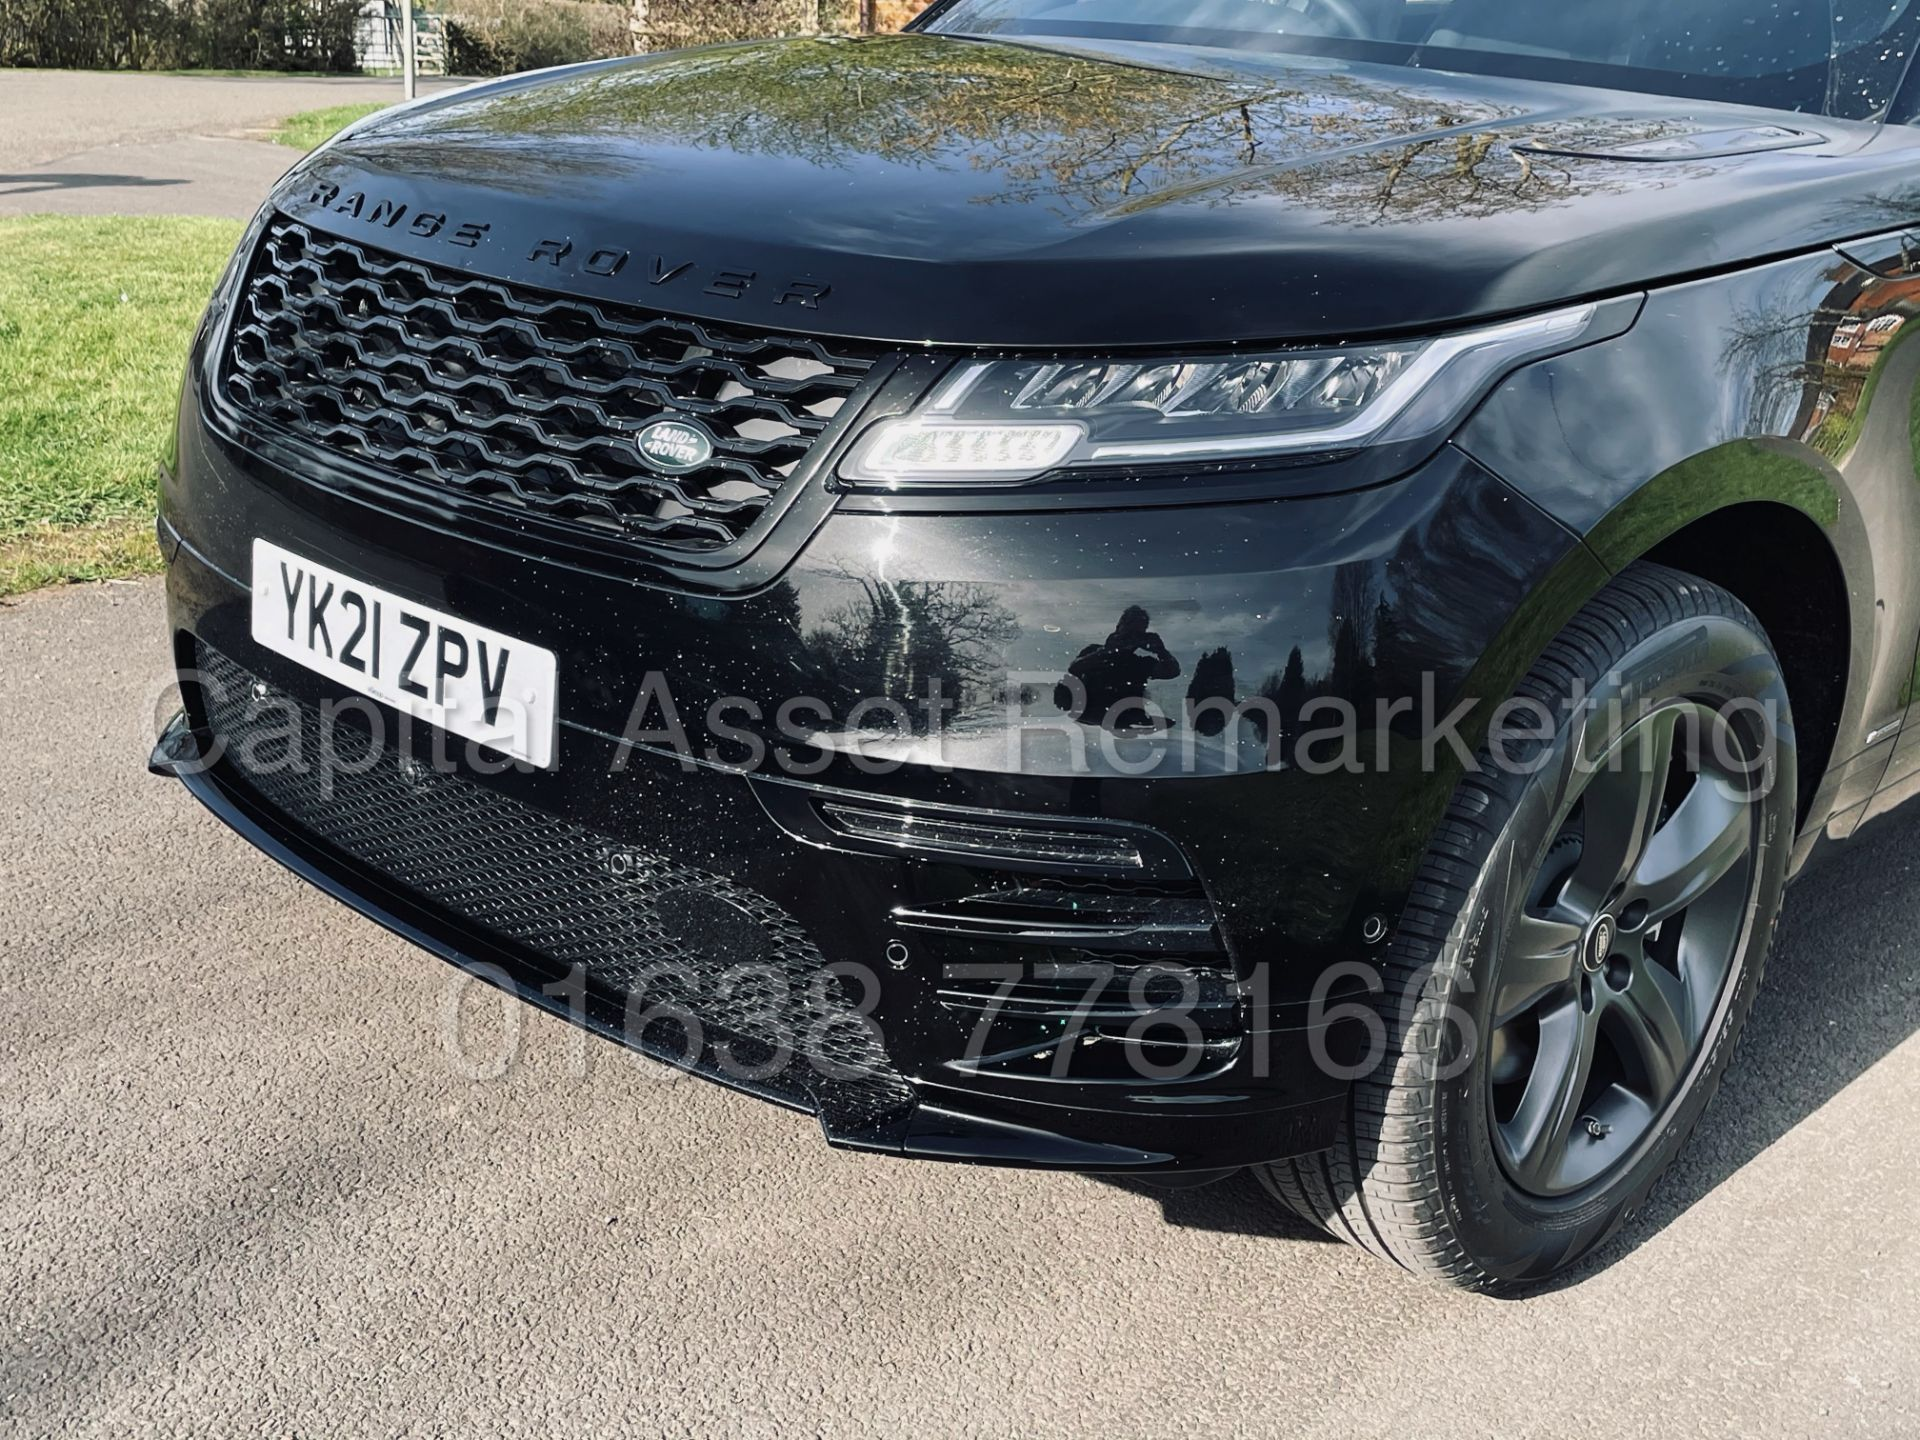 (On Sale) RANGE ROVER VELAR *R-DYNAMIC* SUV (2021) *8 SPEED AUTO - LEATHER* (DELIVERY MILES) - Image 16 of 50